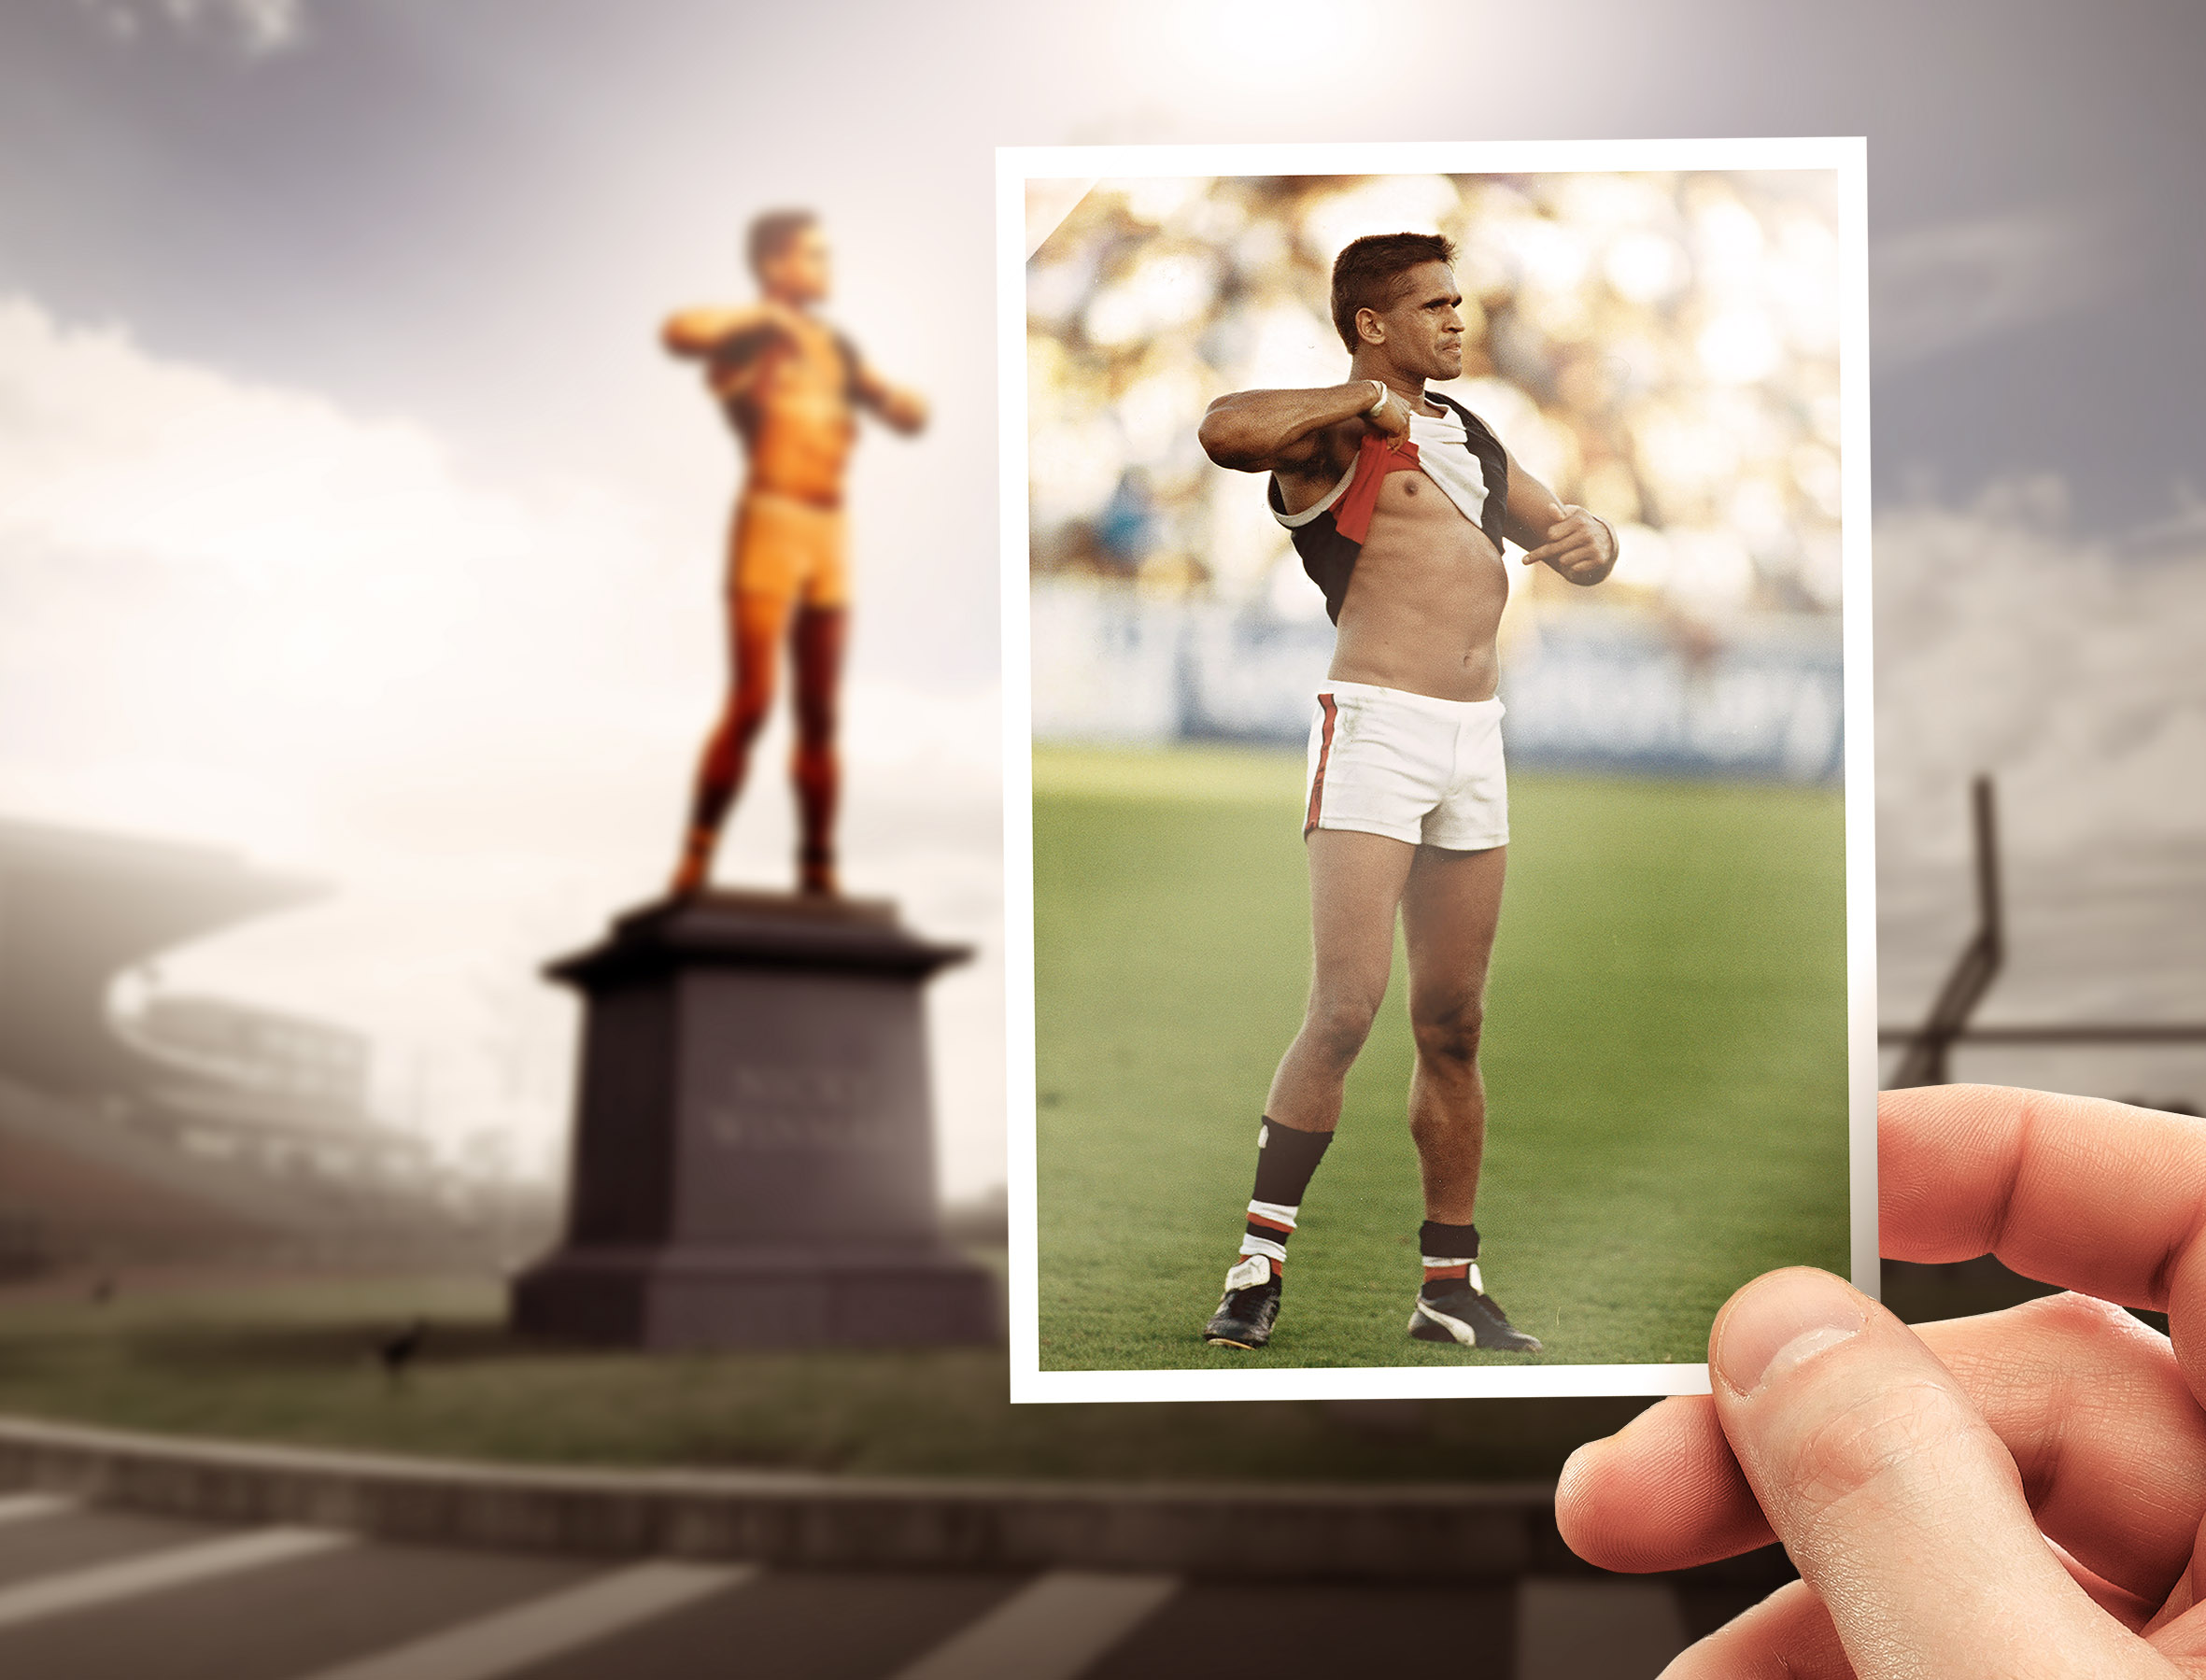 The original image of Nicky captured by Wayne Ludbey, sitting in front of the mock-up of the statue that we proposed.